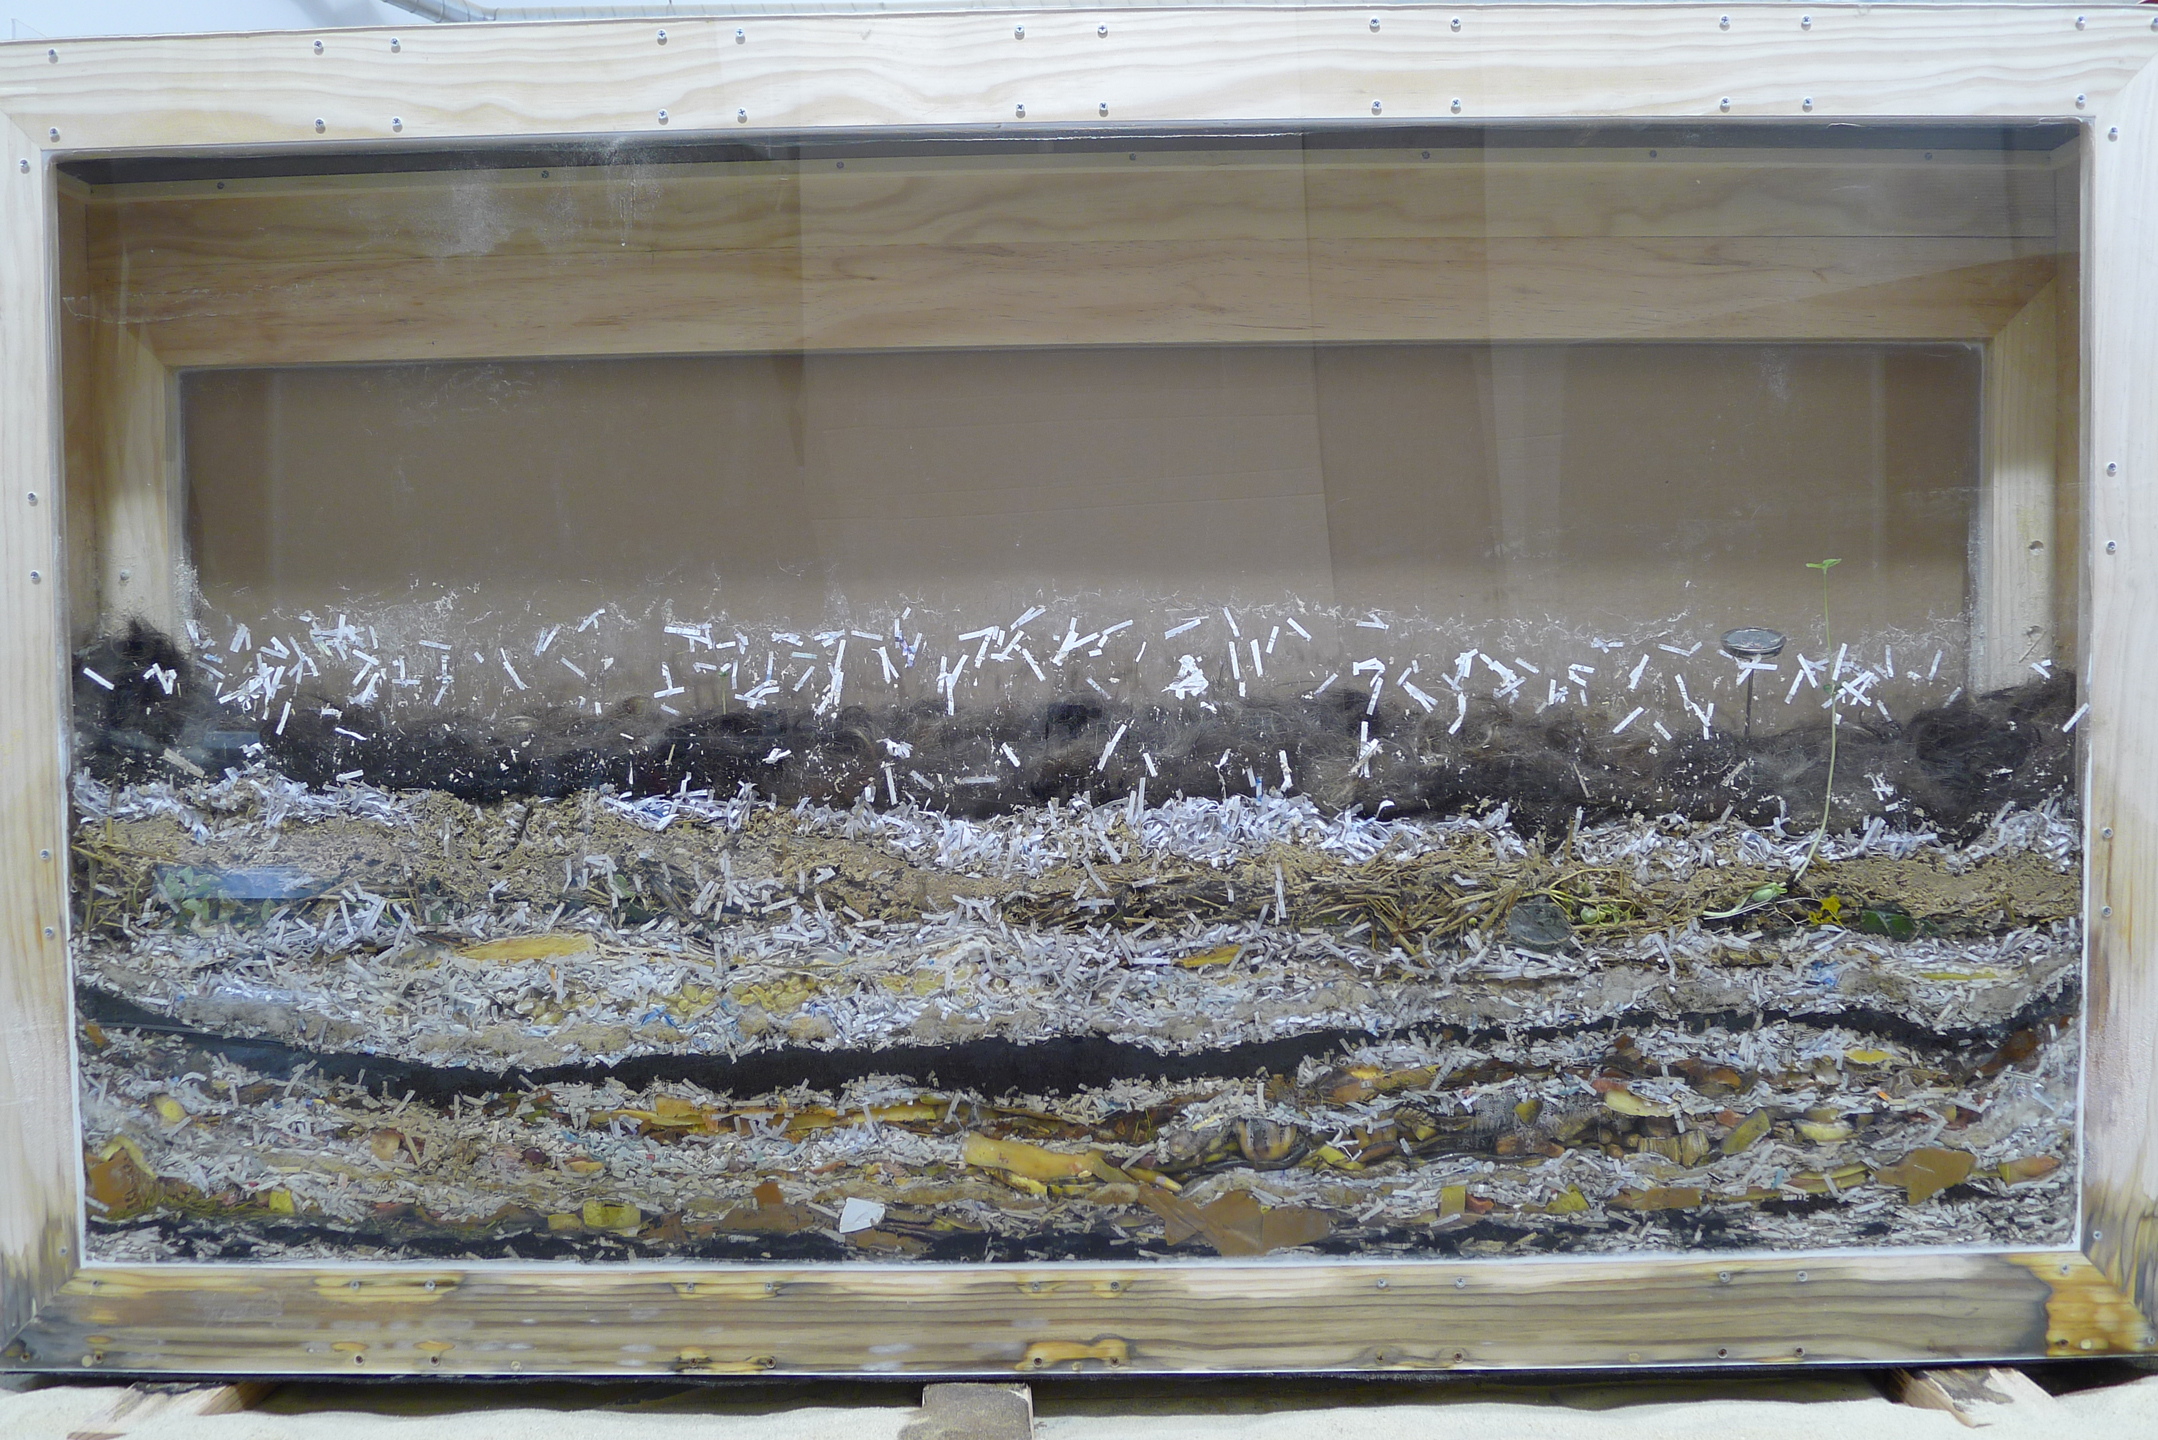 Indoor Compost Box - Temple University | Crazy About Compost